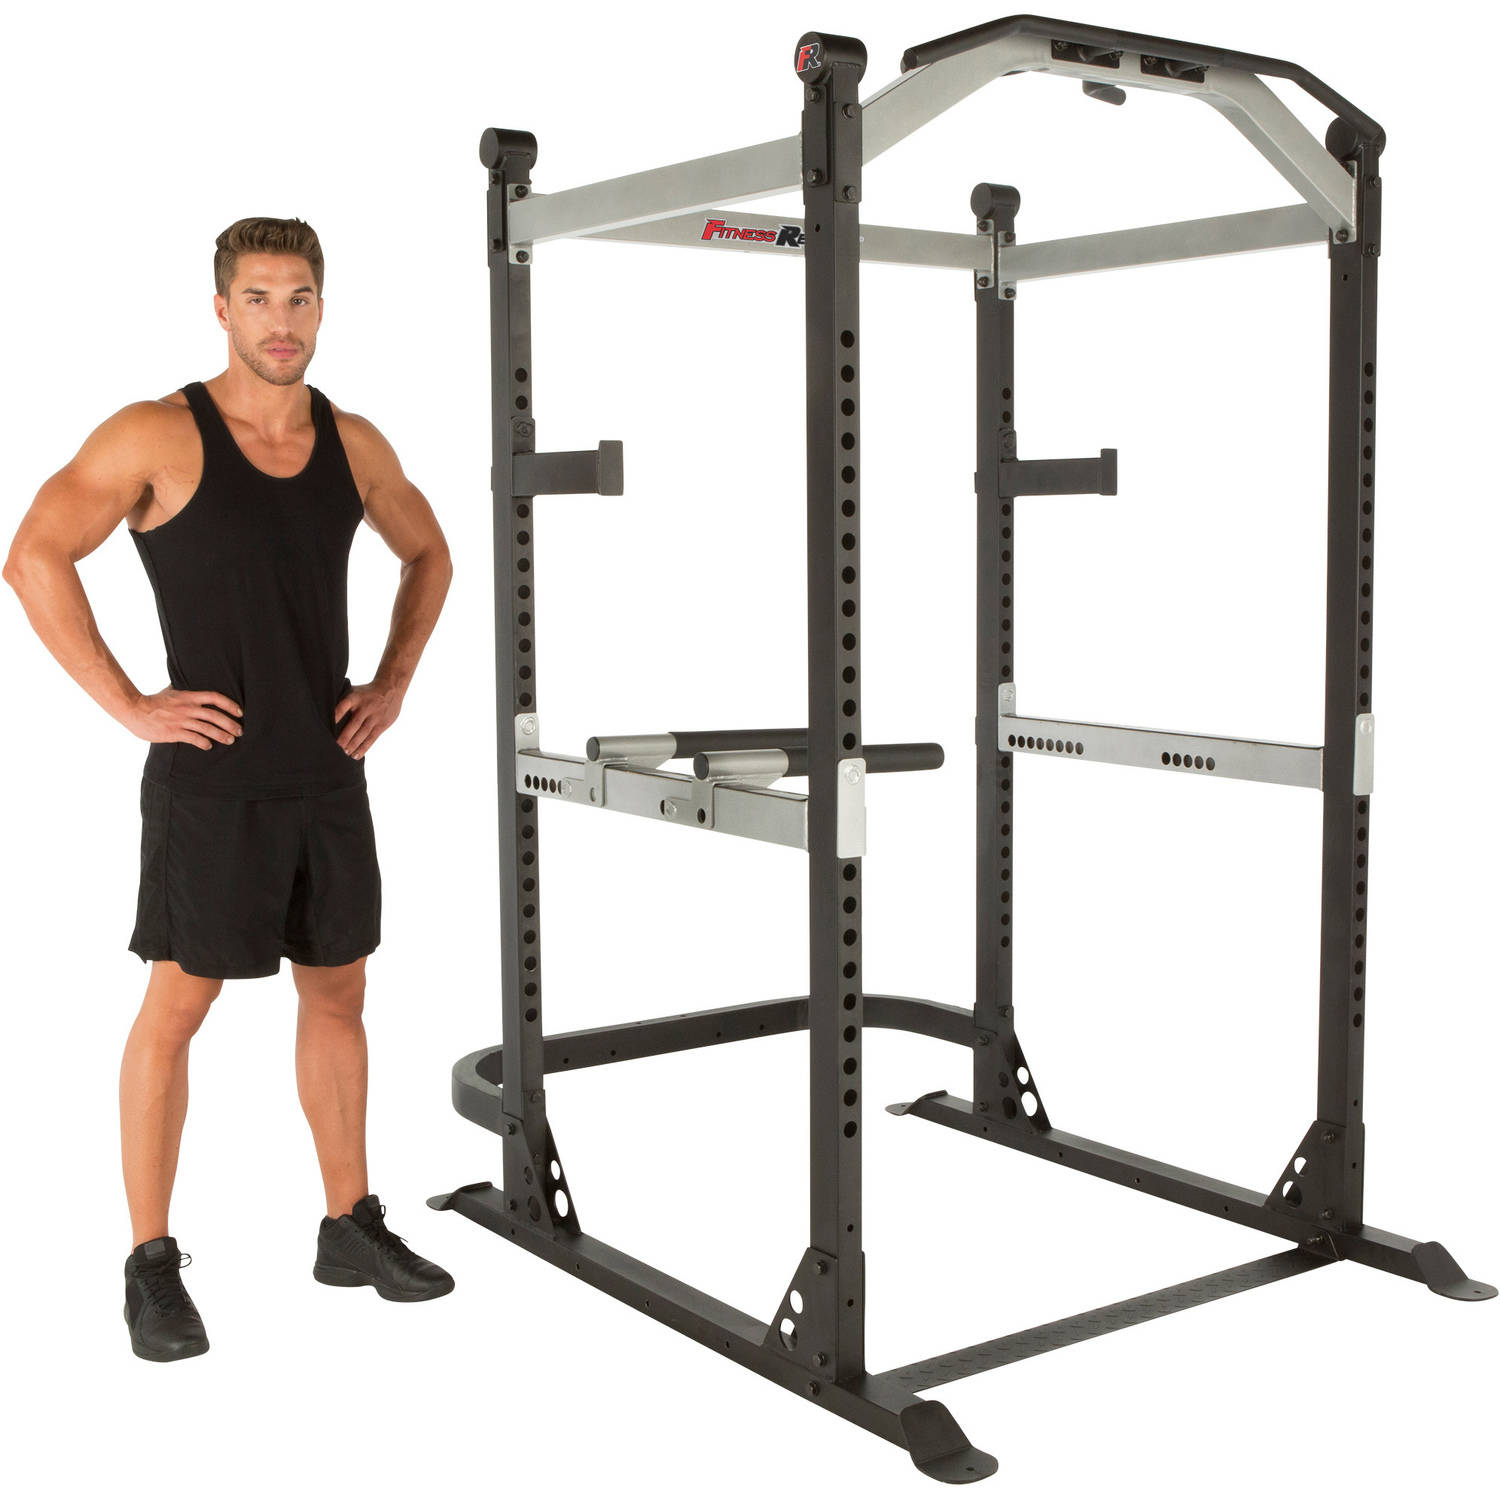 FITNESS REALITY X-Class Light Commercial High-Capacity Olympic Power Cage (Box 2 of 2)